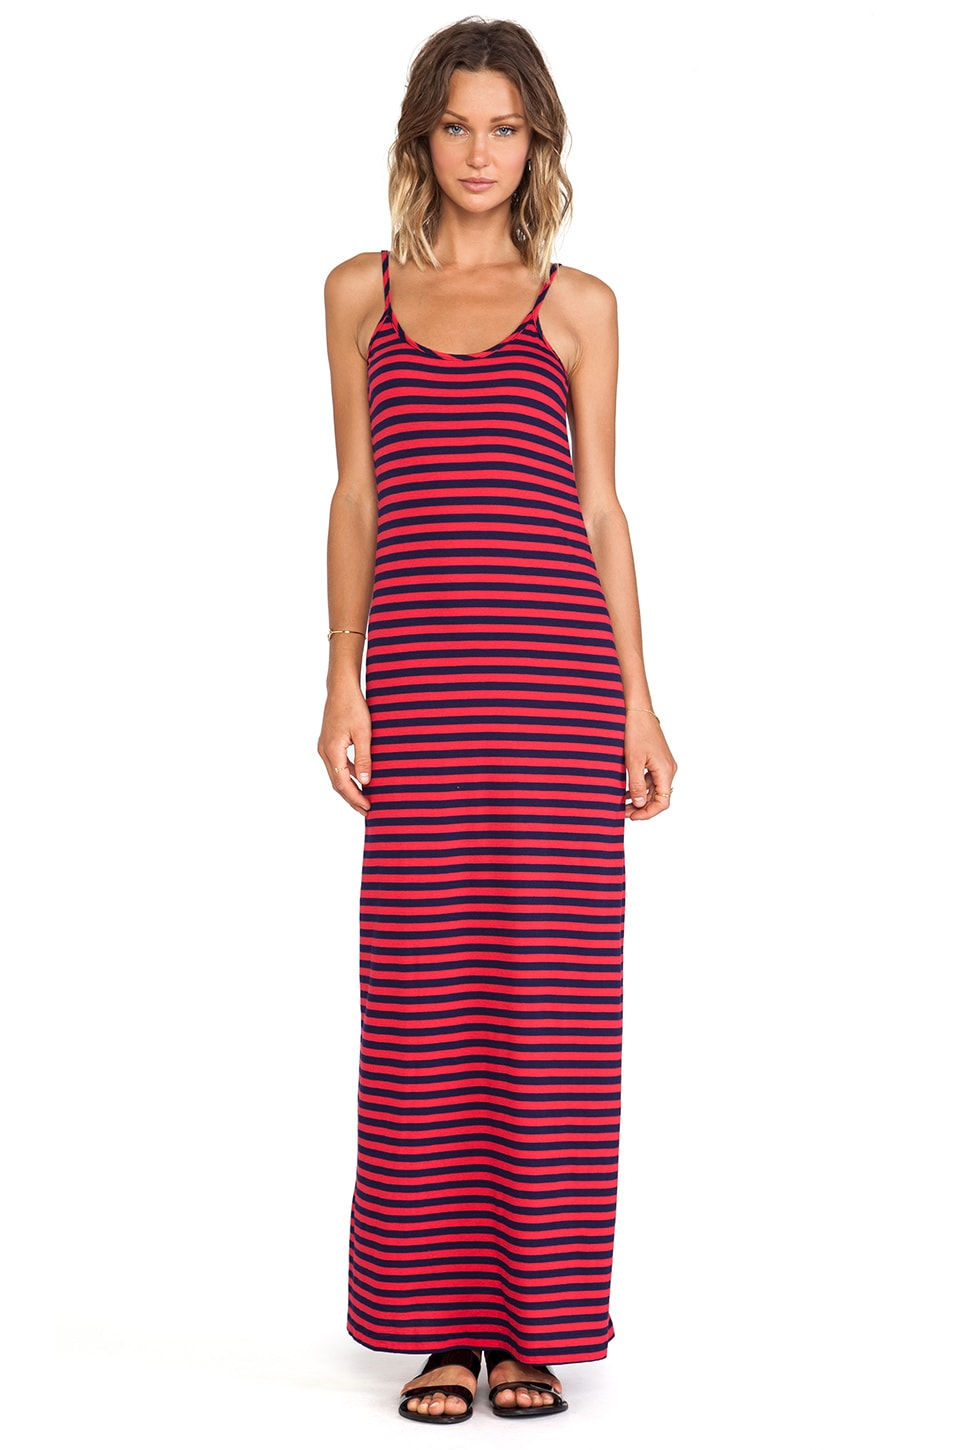 Bobi Light Weight Jersey Striped Maxi Dress